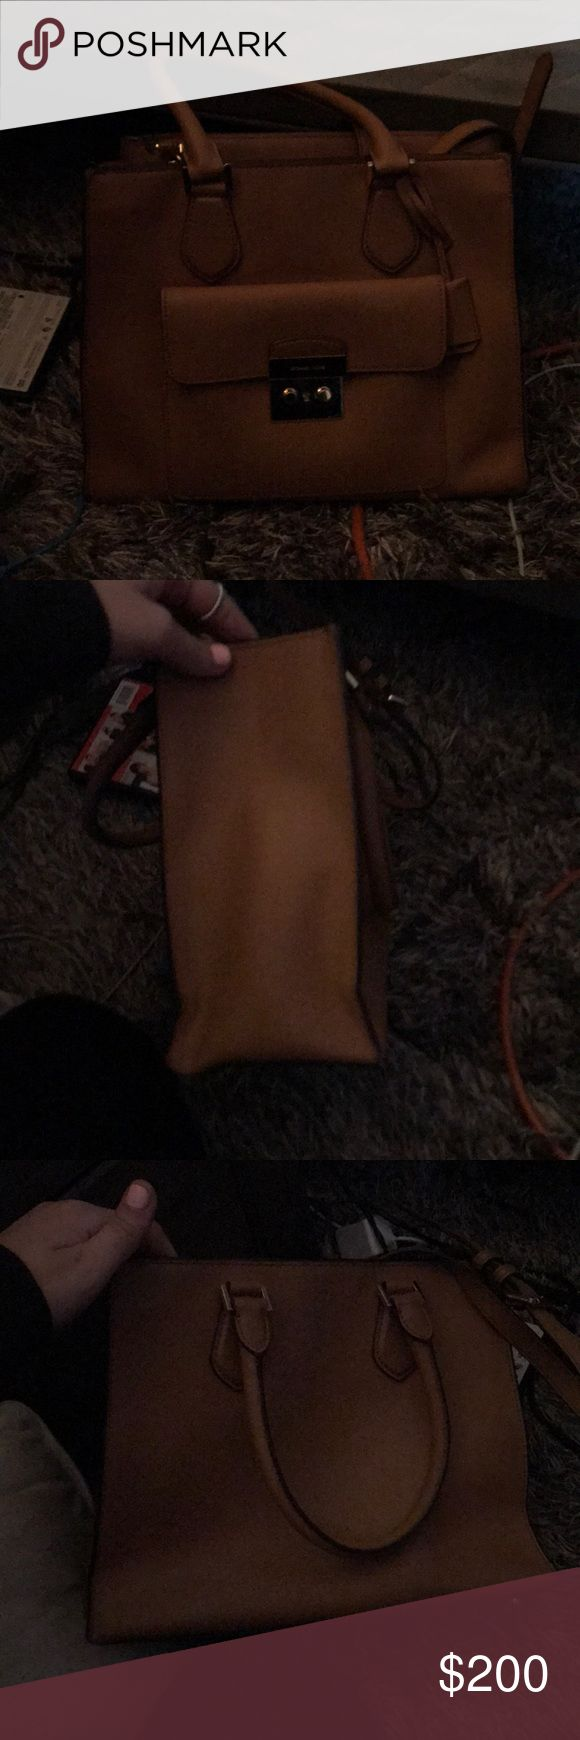 Michael Kors purse Real Michael Kors purse  Great condition  Used for a month   Getting rid of because ex boyfriend got it for me and want nothing left from the relationship :) $200 obo KORS Michael Kors Bags Shoulder Bags